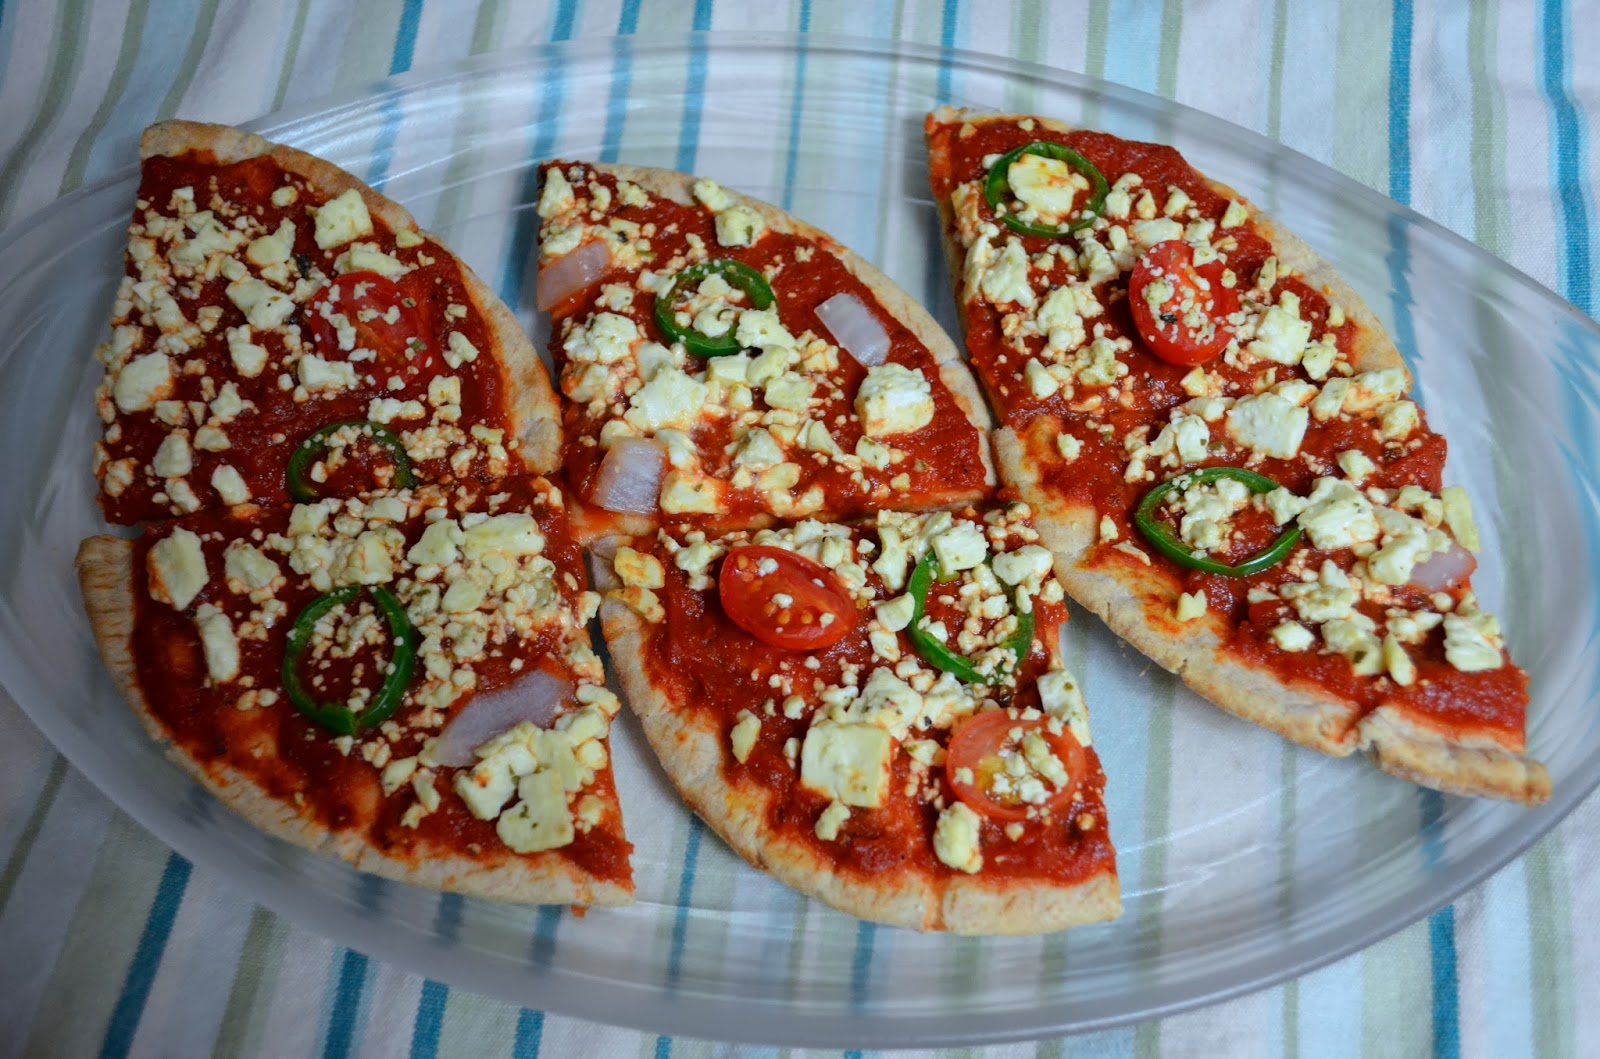 mini pita pizza, individual pizzas, healthy eating, clean eating recipe, pizza recipe, whole wheat pita, whole wheat pizza